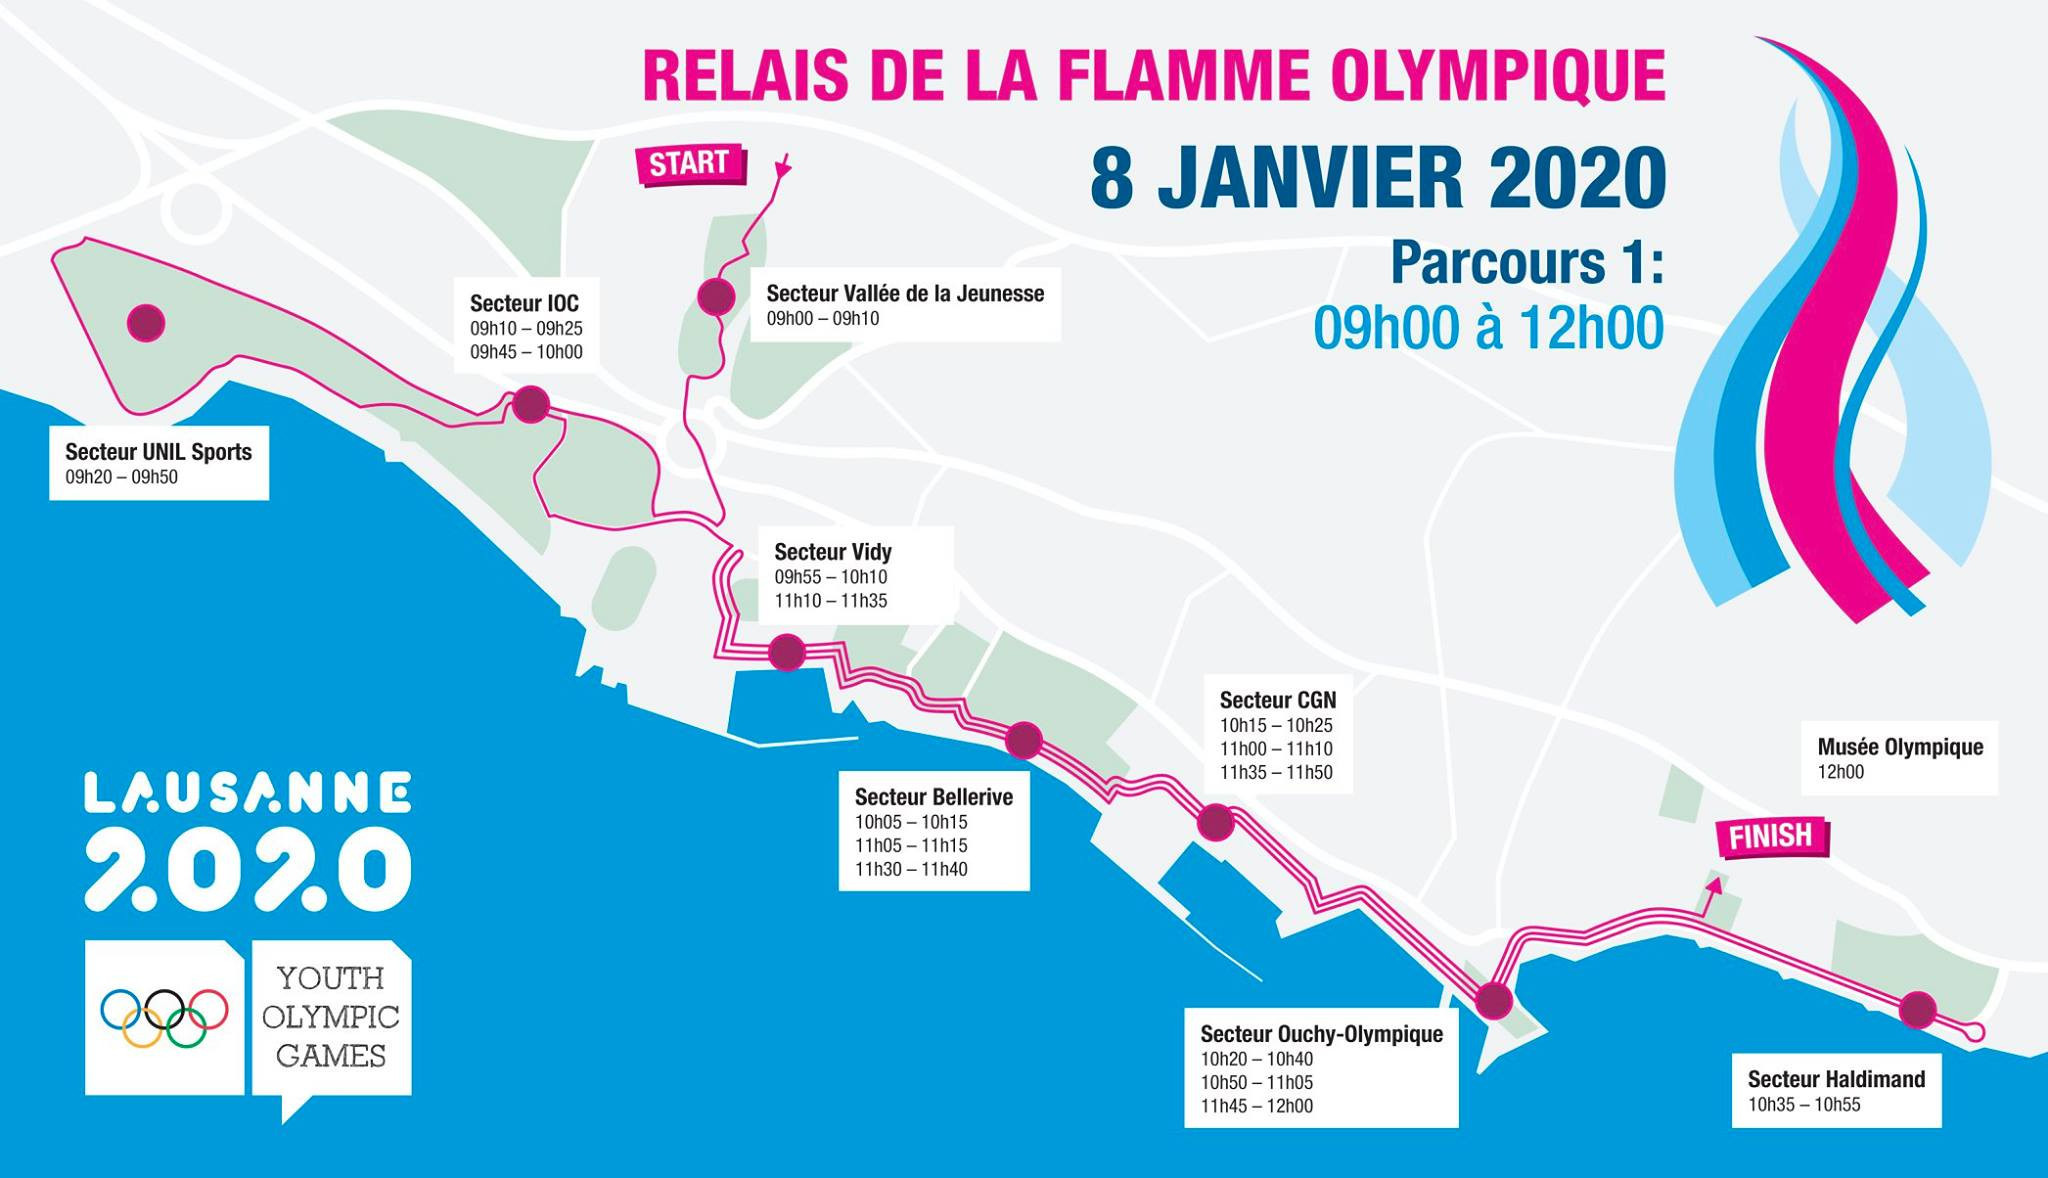 Lausanne 2020 Torch Relay poised for finale in host city